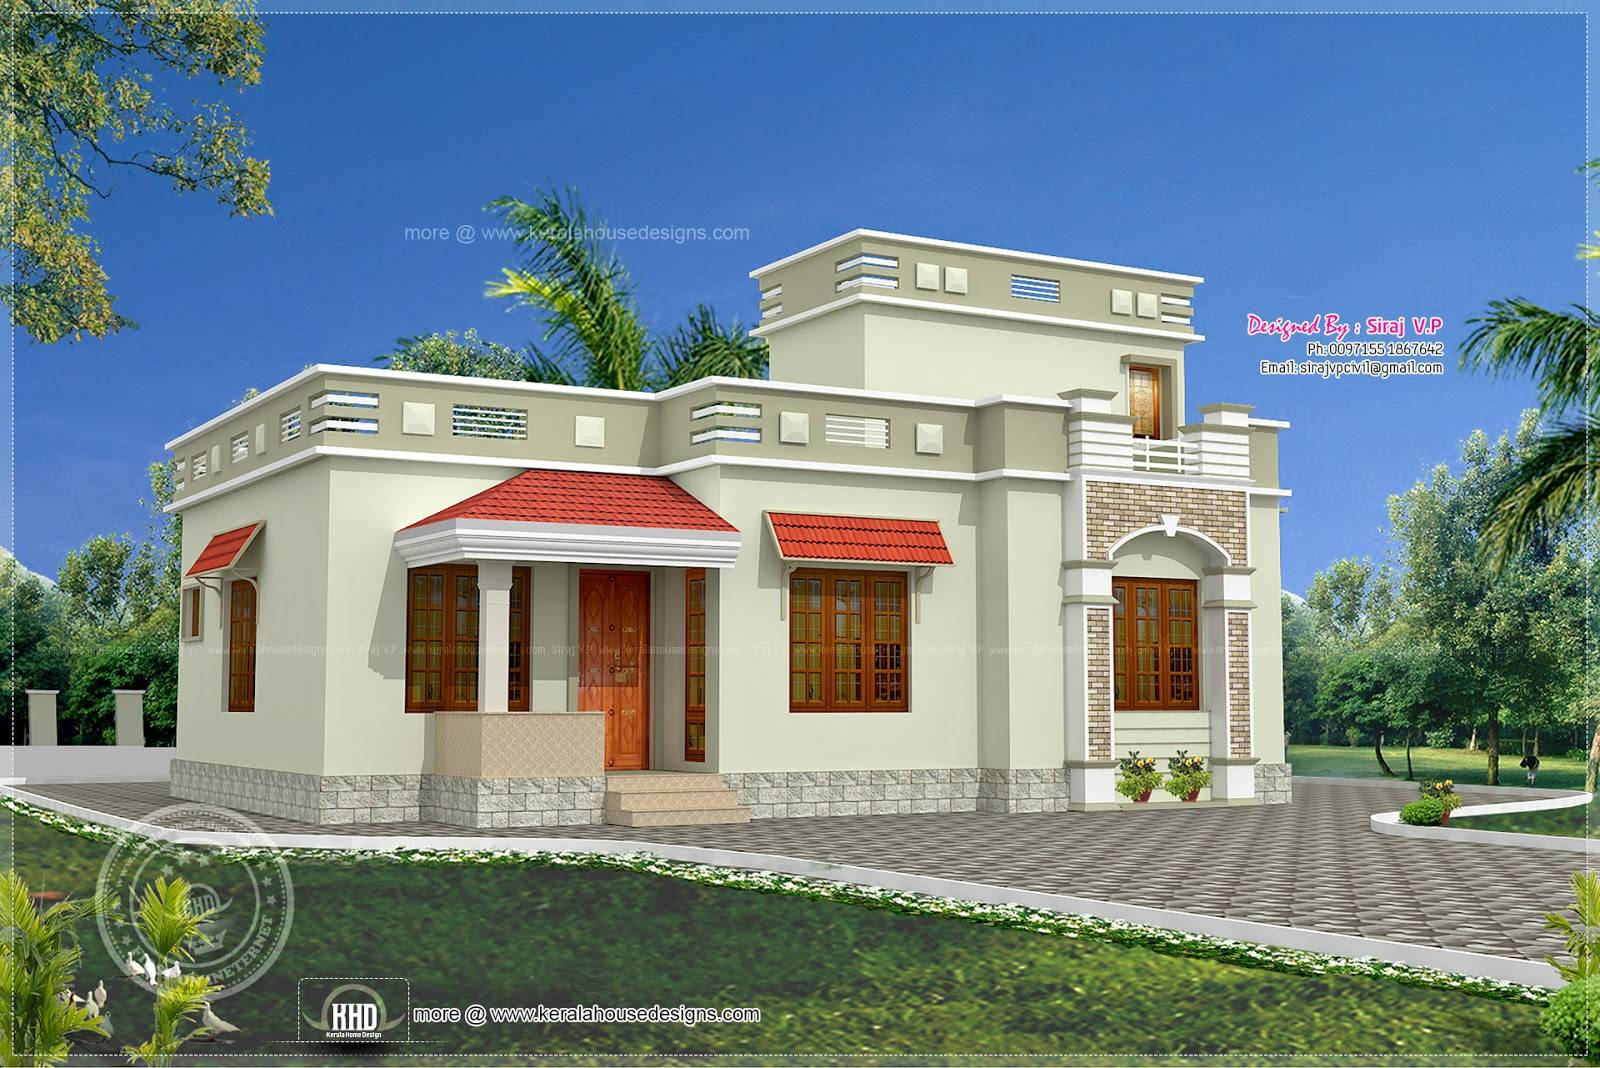 Kerala House Models Duplex Models Joy Studio Design